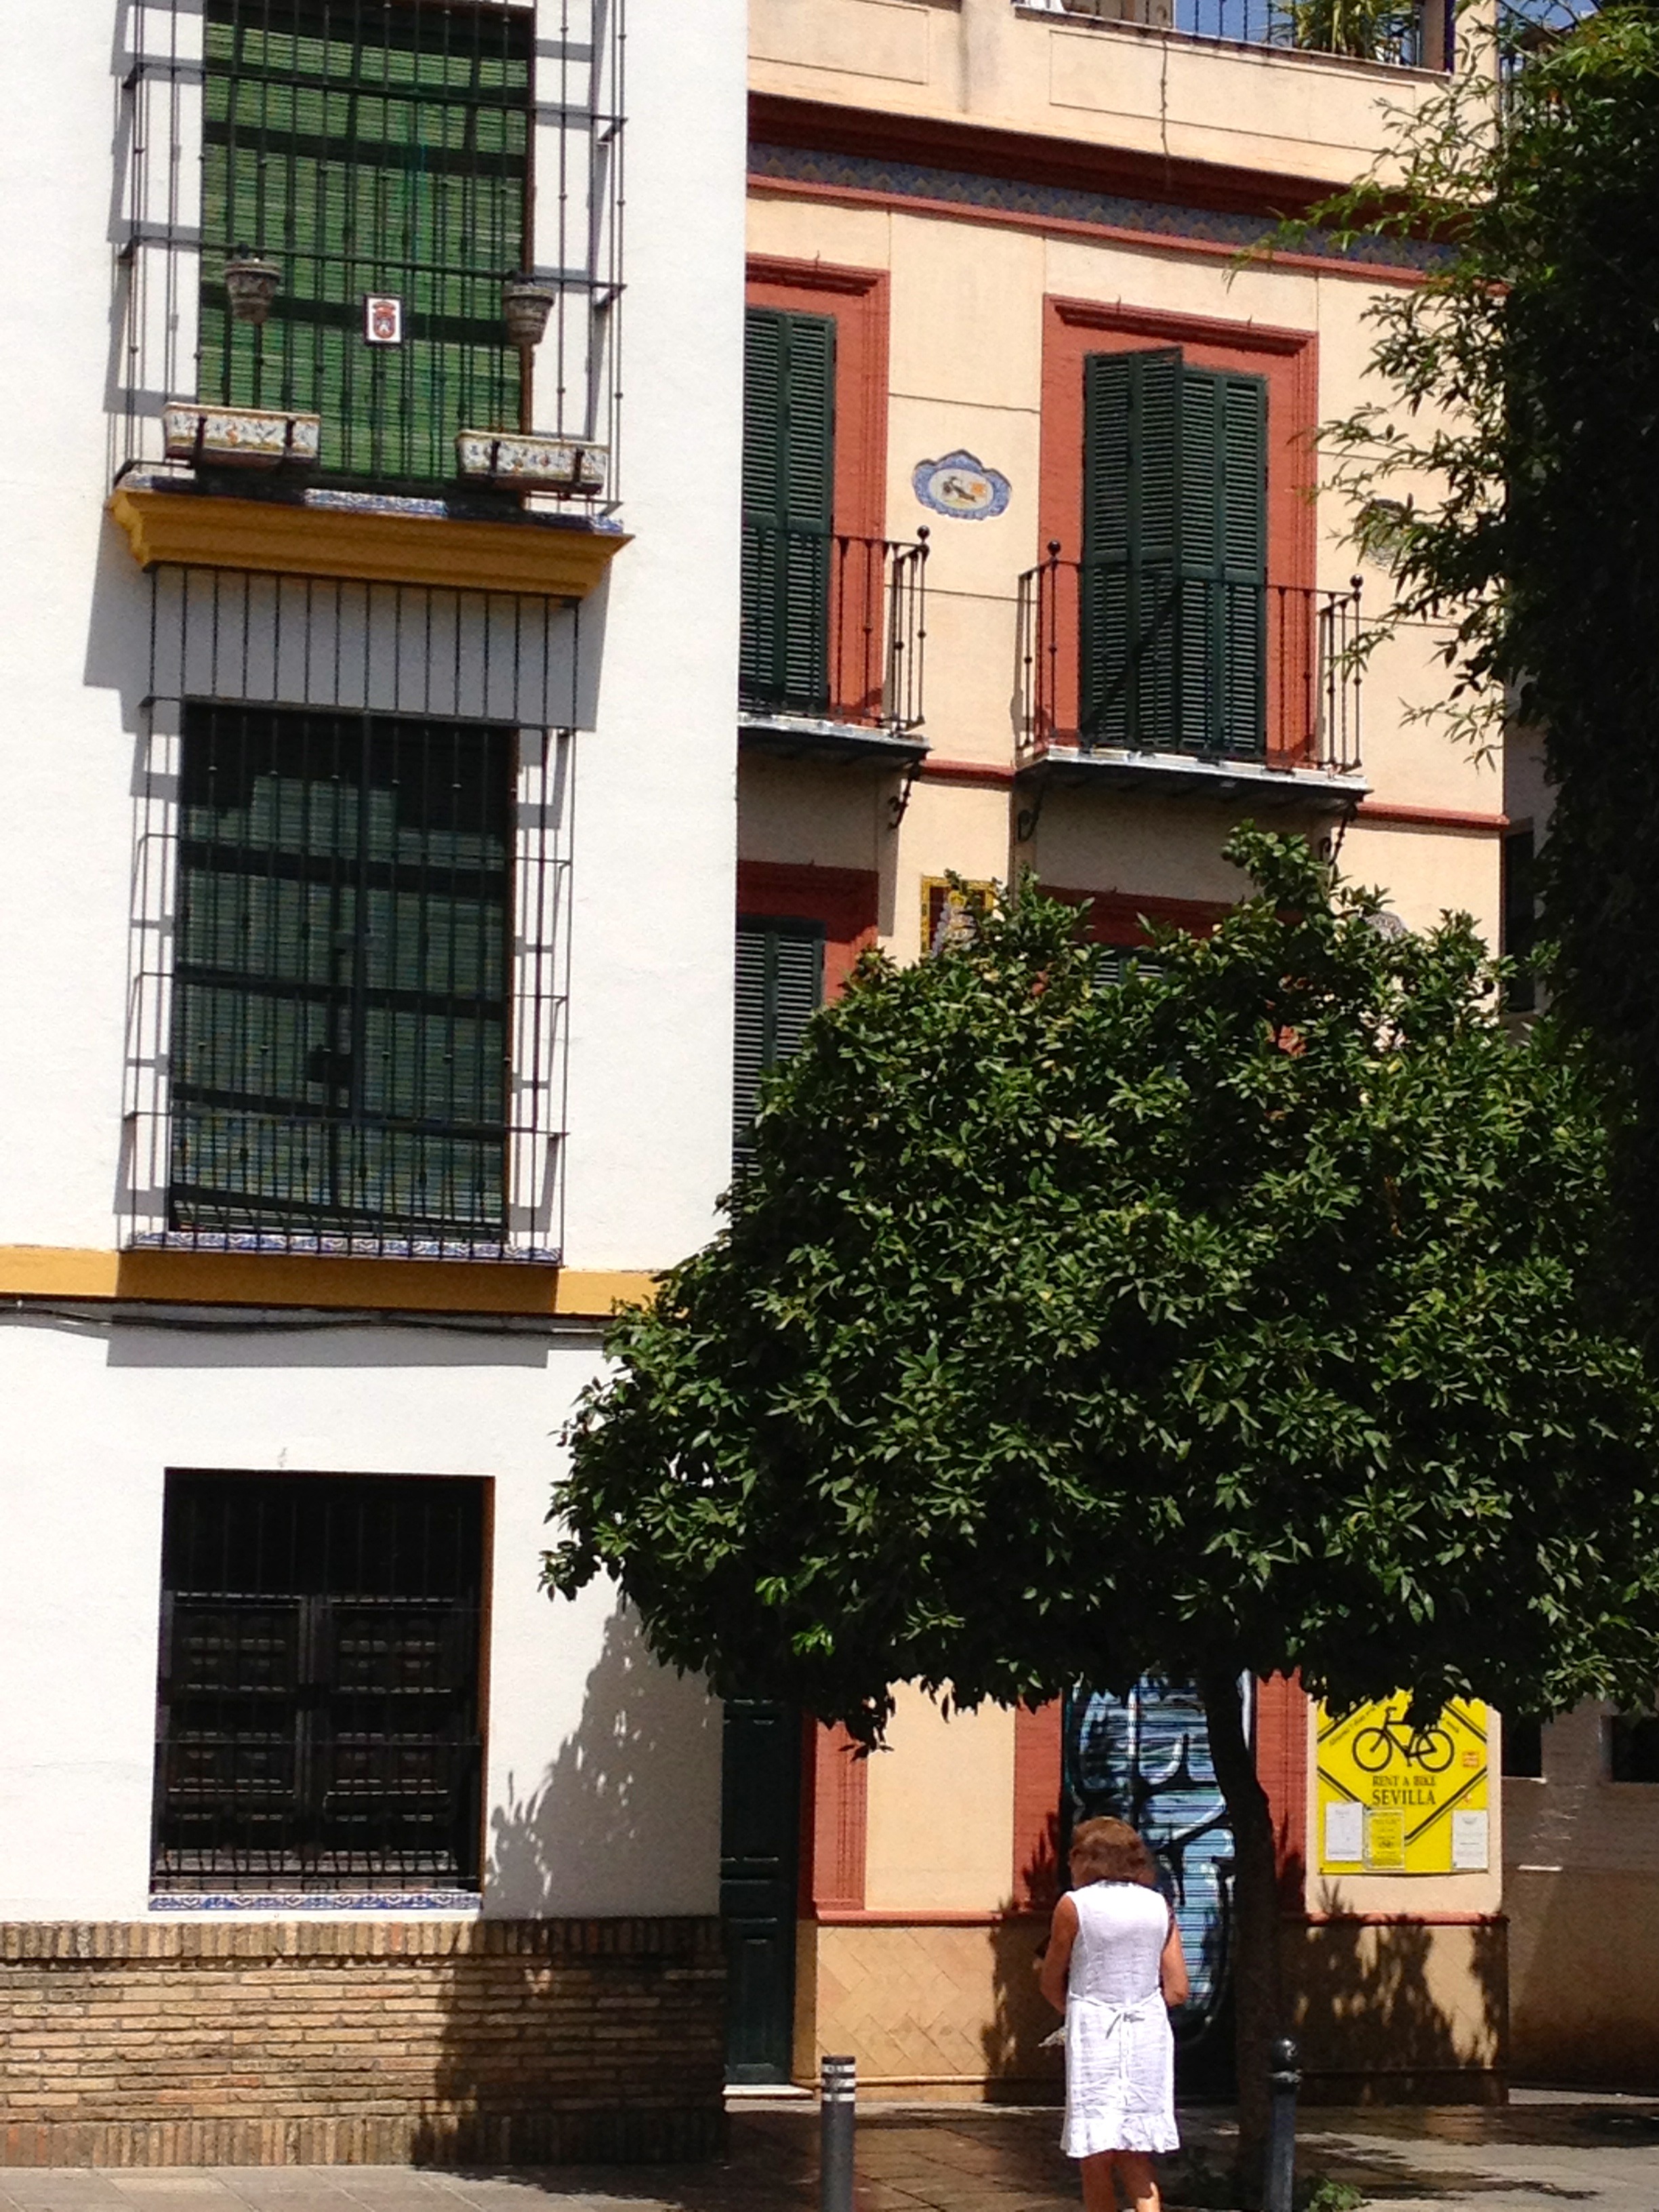 Our free apartment from GoWithOh in Seville Spain